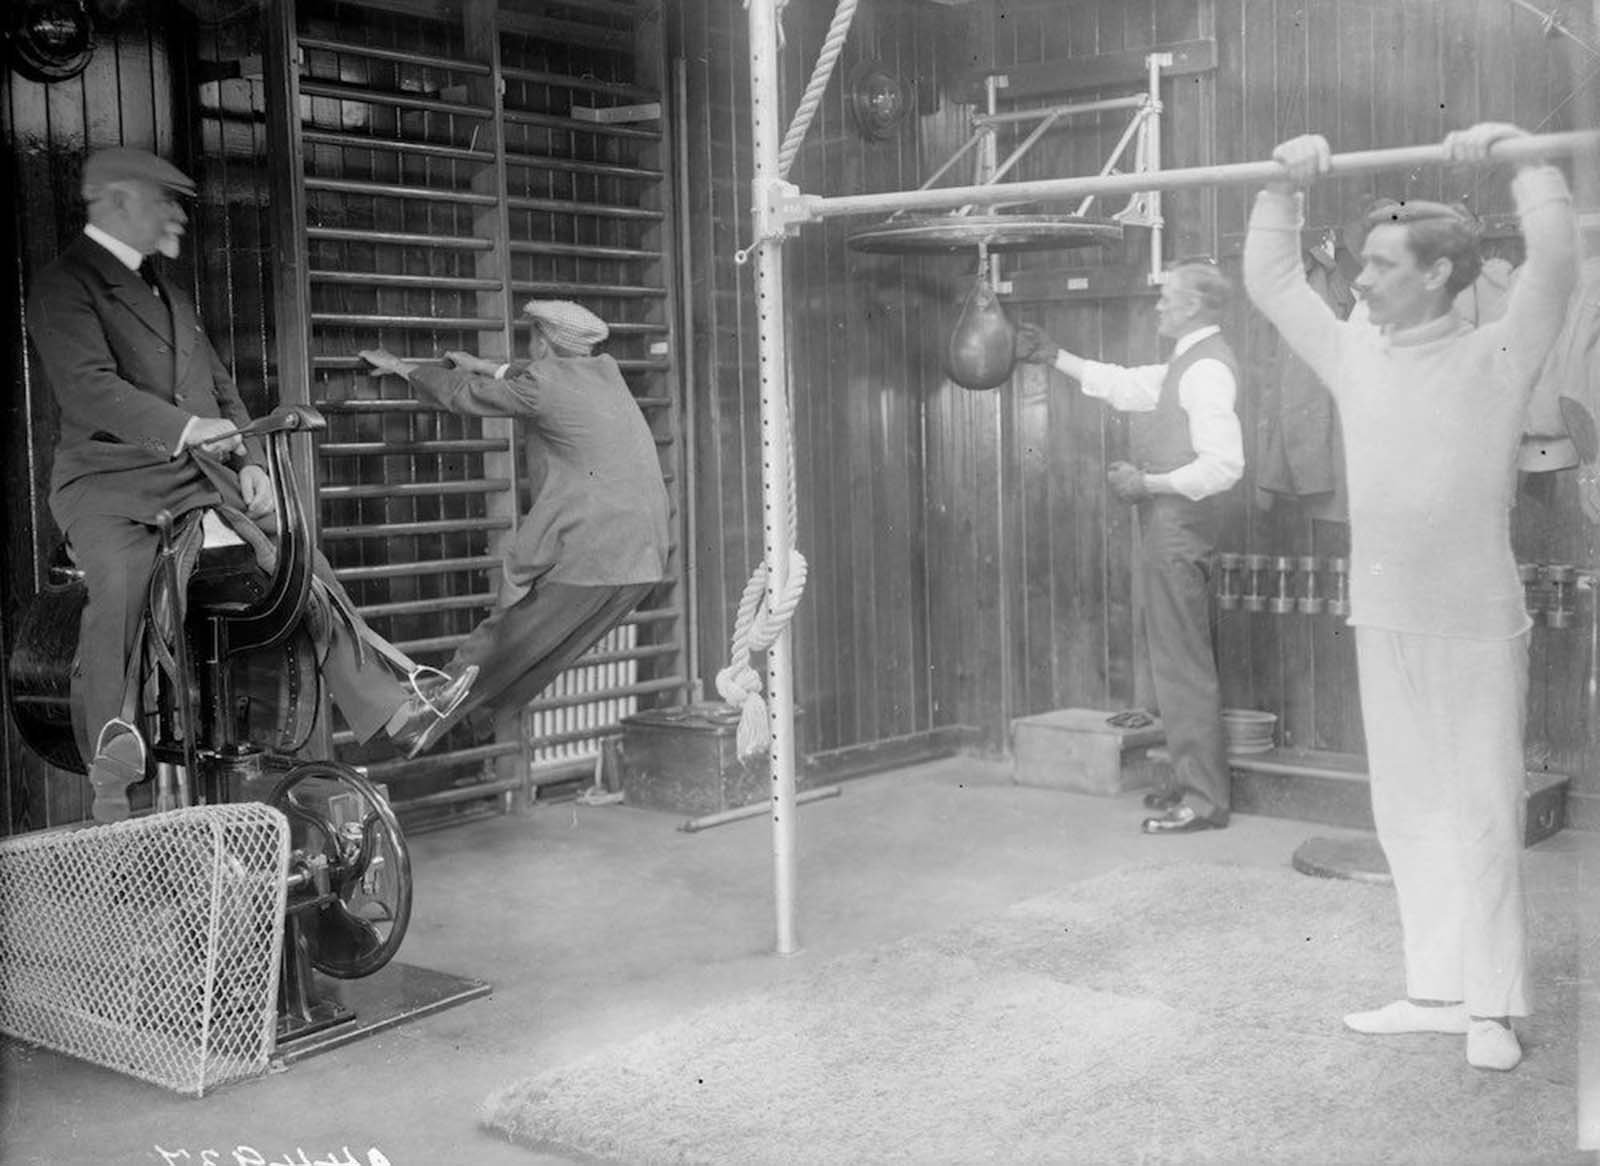 Passengers working out in the gym of the Cunard cruise liner Franconia, which was destroyed by a U-boat in 1916. Amongst the equipment is a punchbag and an early cycling machine. 1912.